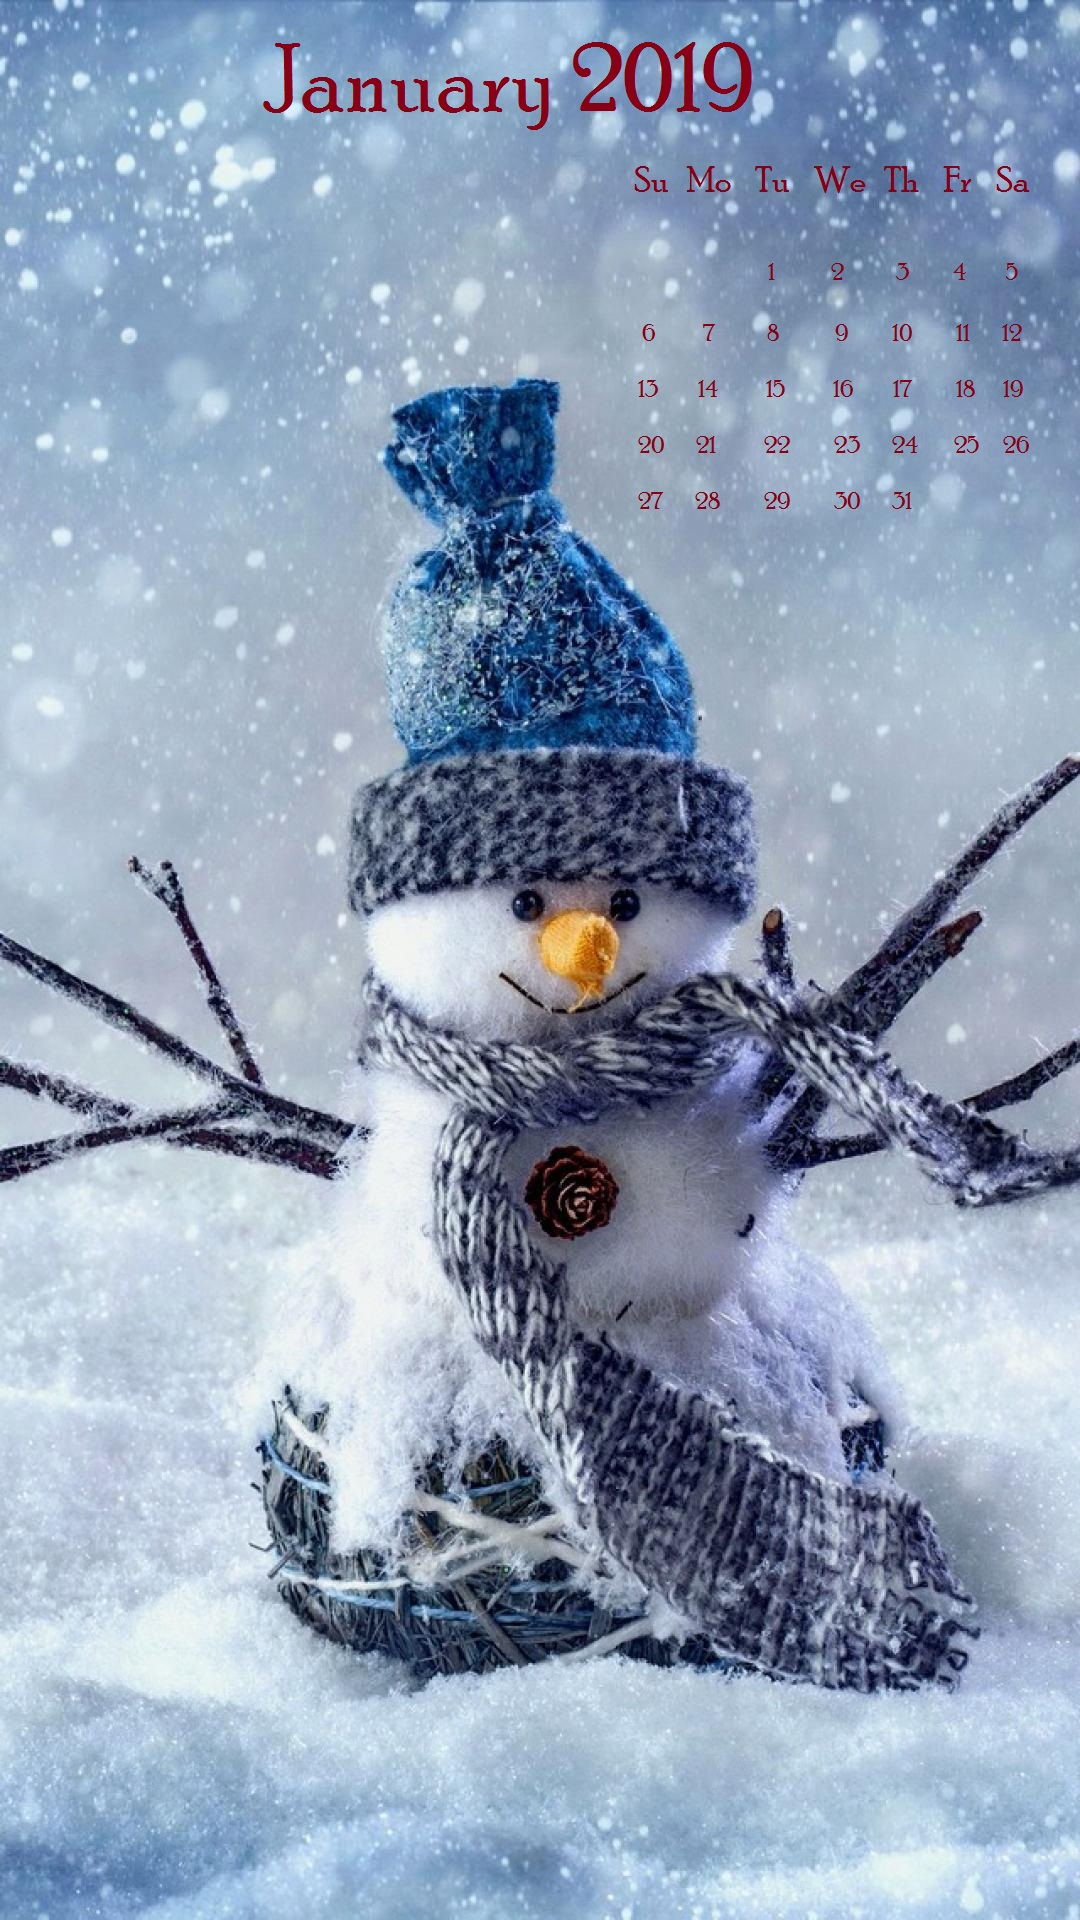 Snow January 2019 iPhone Calendar